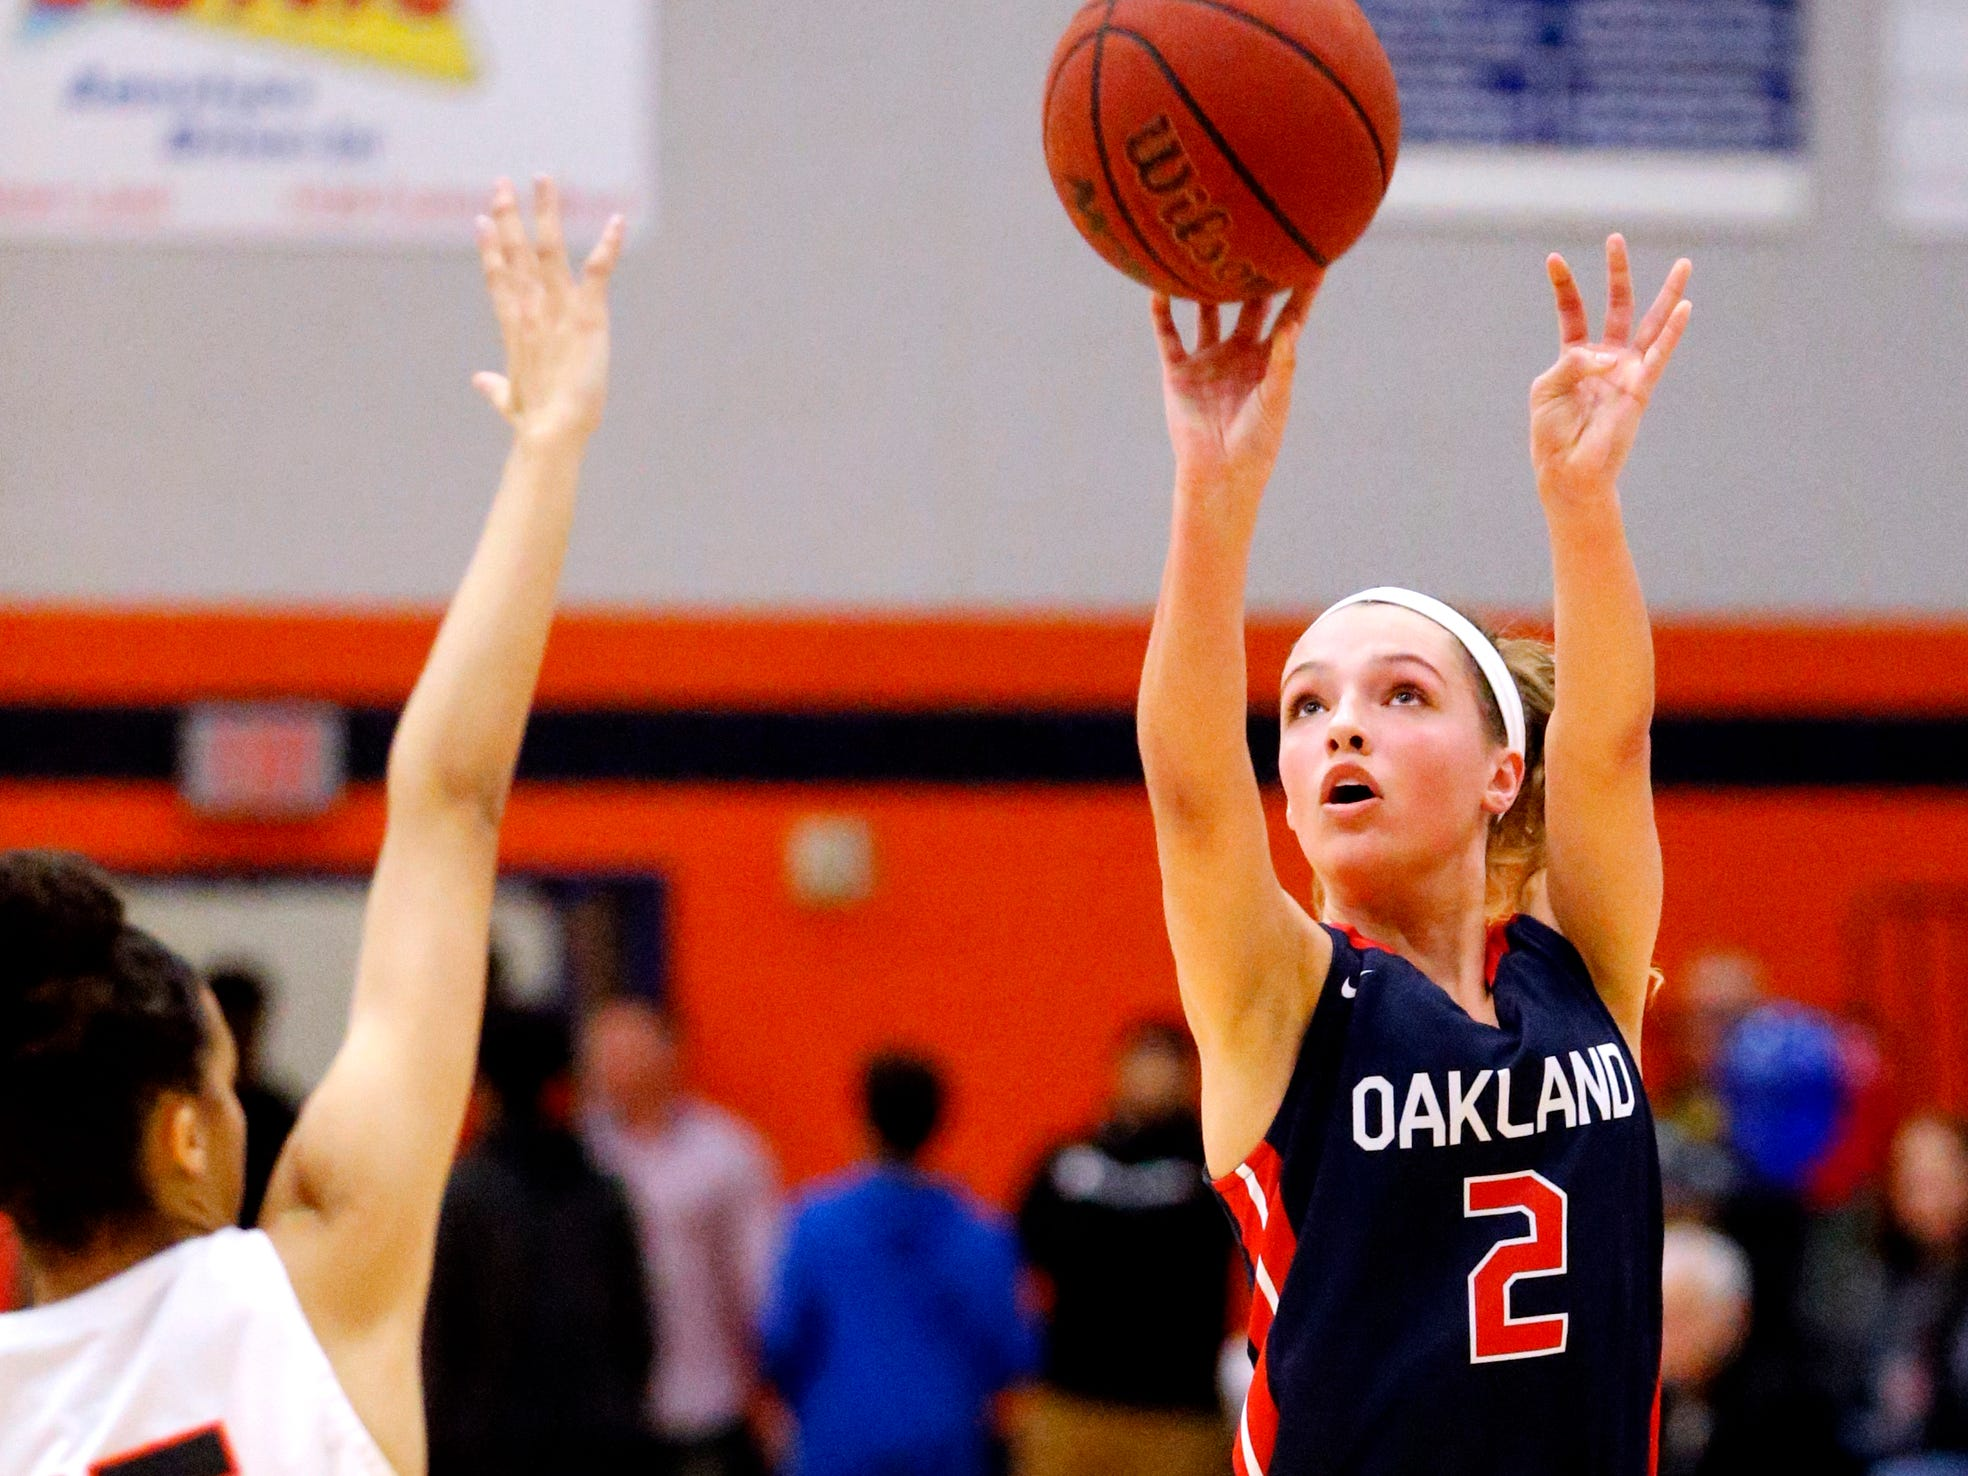 Oakland's Faith Adams (2) shoots the ball during the game against Blackman on Friday, Feb. 8, 2019.